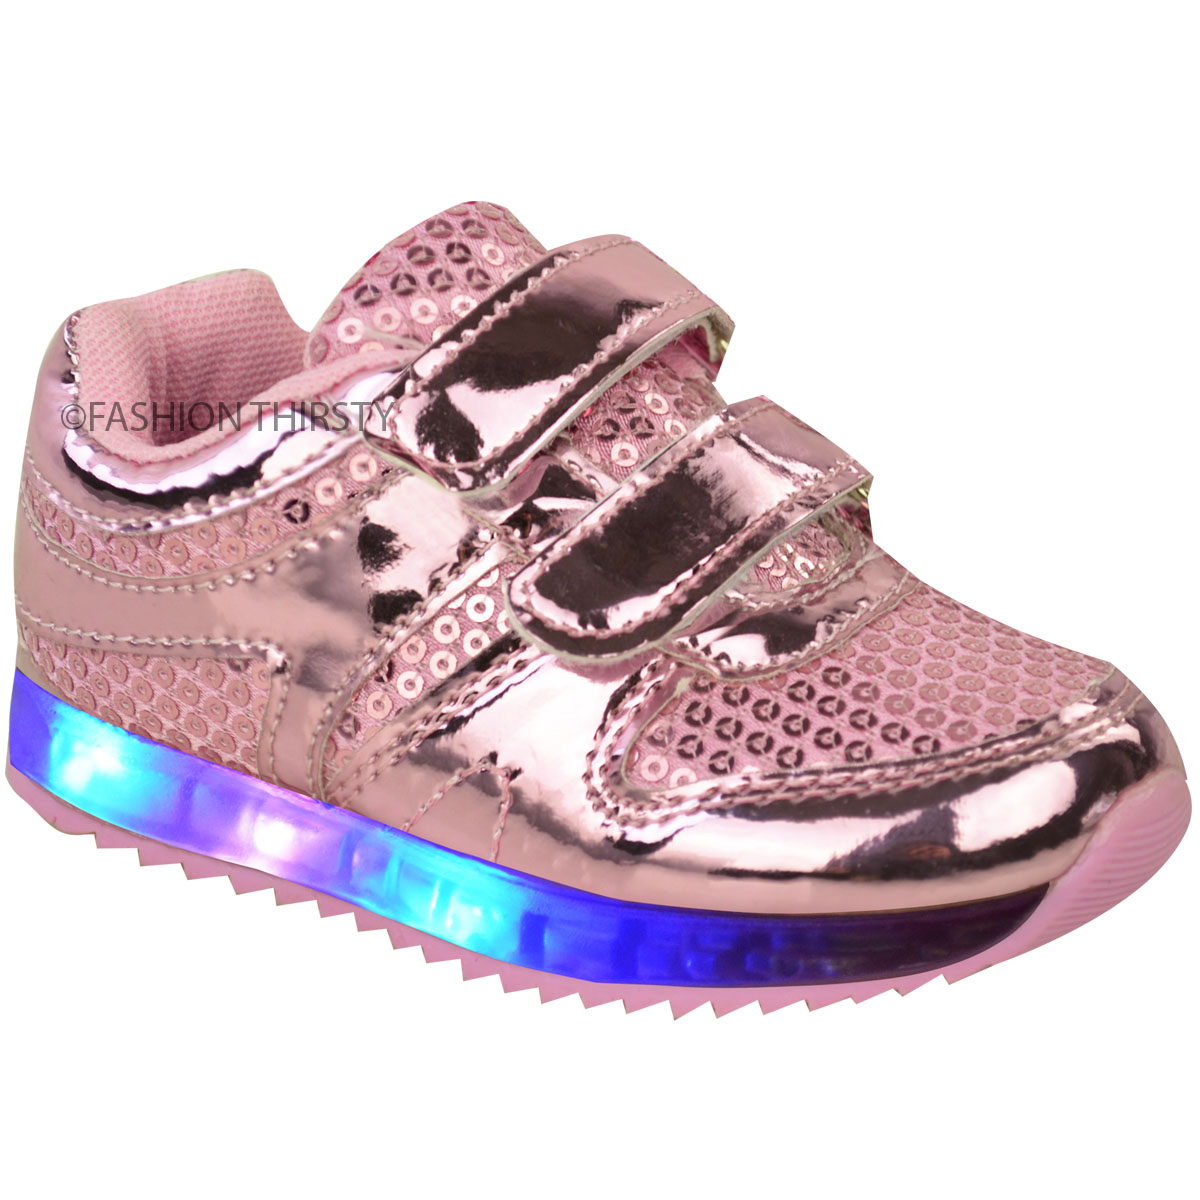 View all kids footwear We have a wide collection of trainers which are ideal for running, walking or day-to-day activities. They have been designed by top brands including Nike, adidas & .